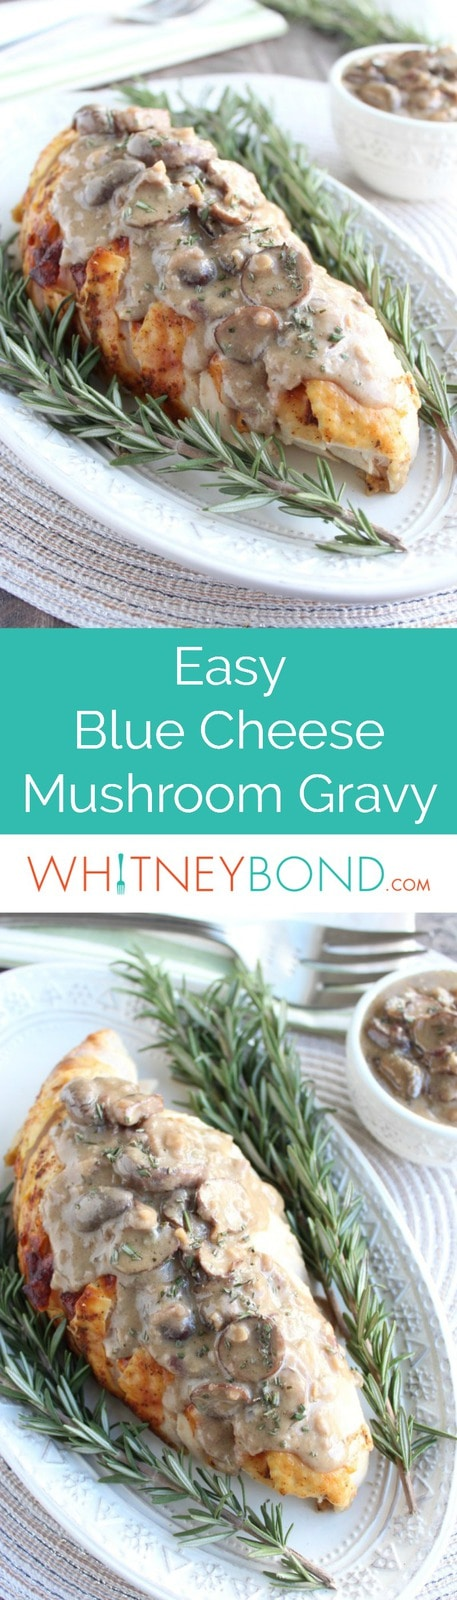 Adding blue cheese to mushroom gravy makes a creamy and flavorful gravy recipe that's perfect on top of sliced roasted turkey breast.